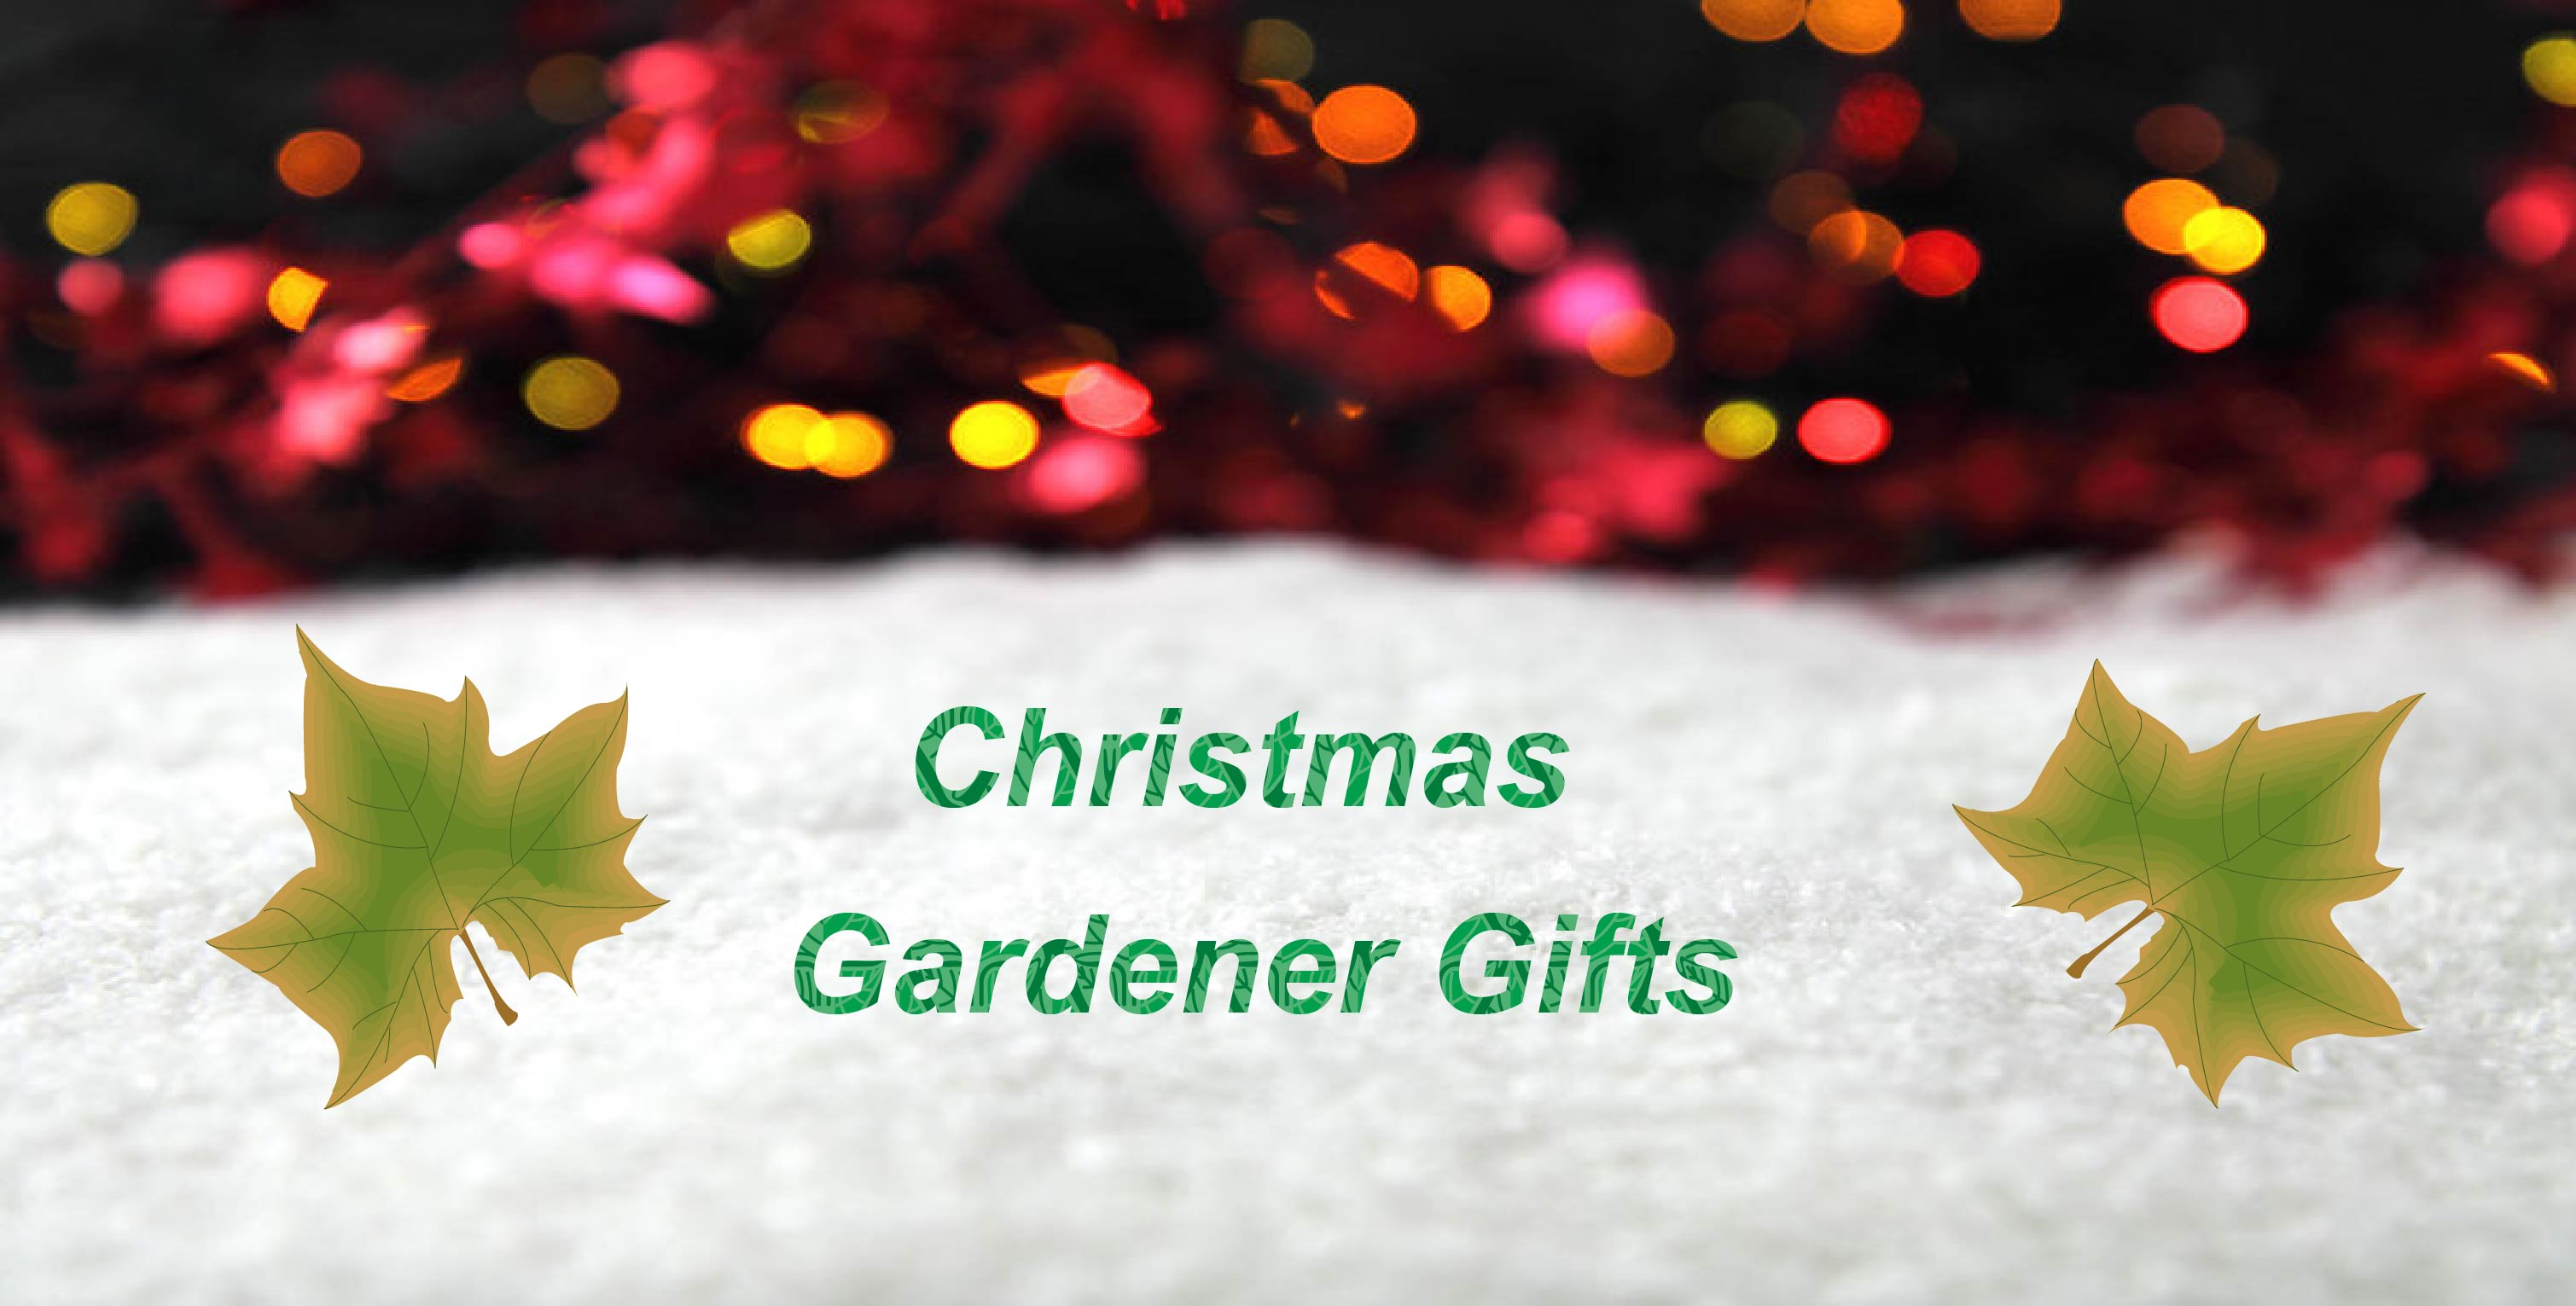 Gifts for the gardeners